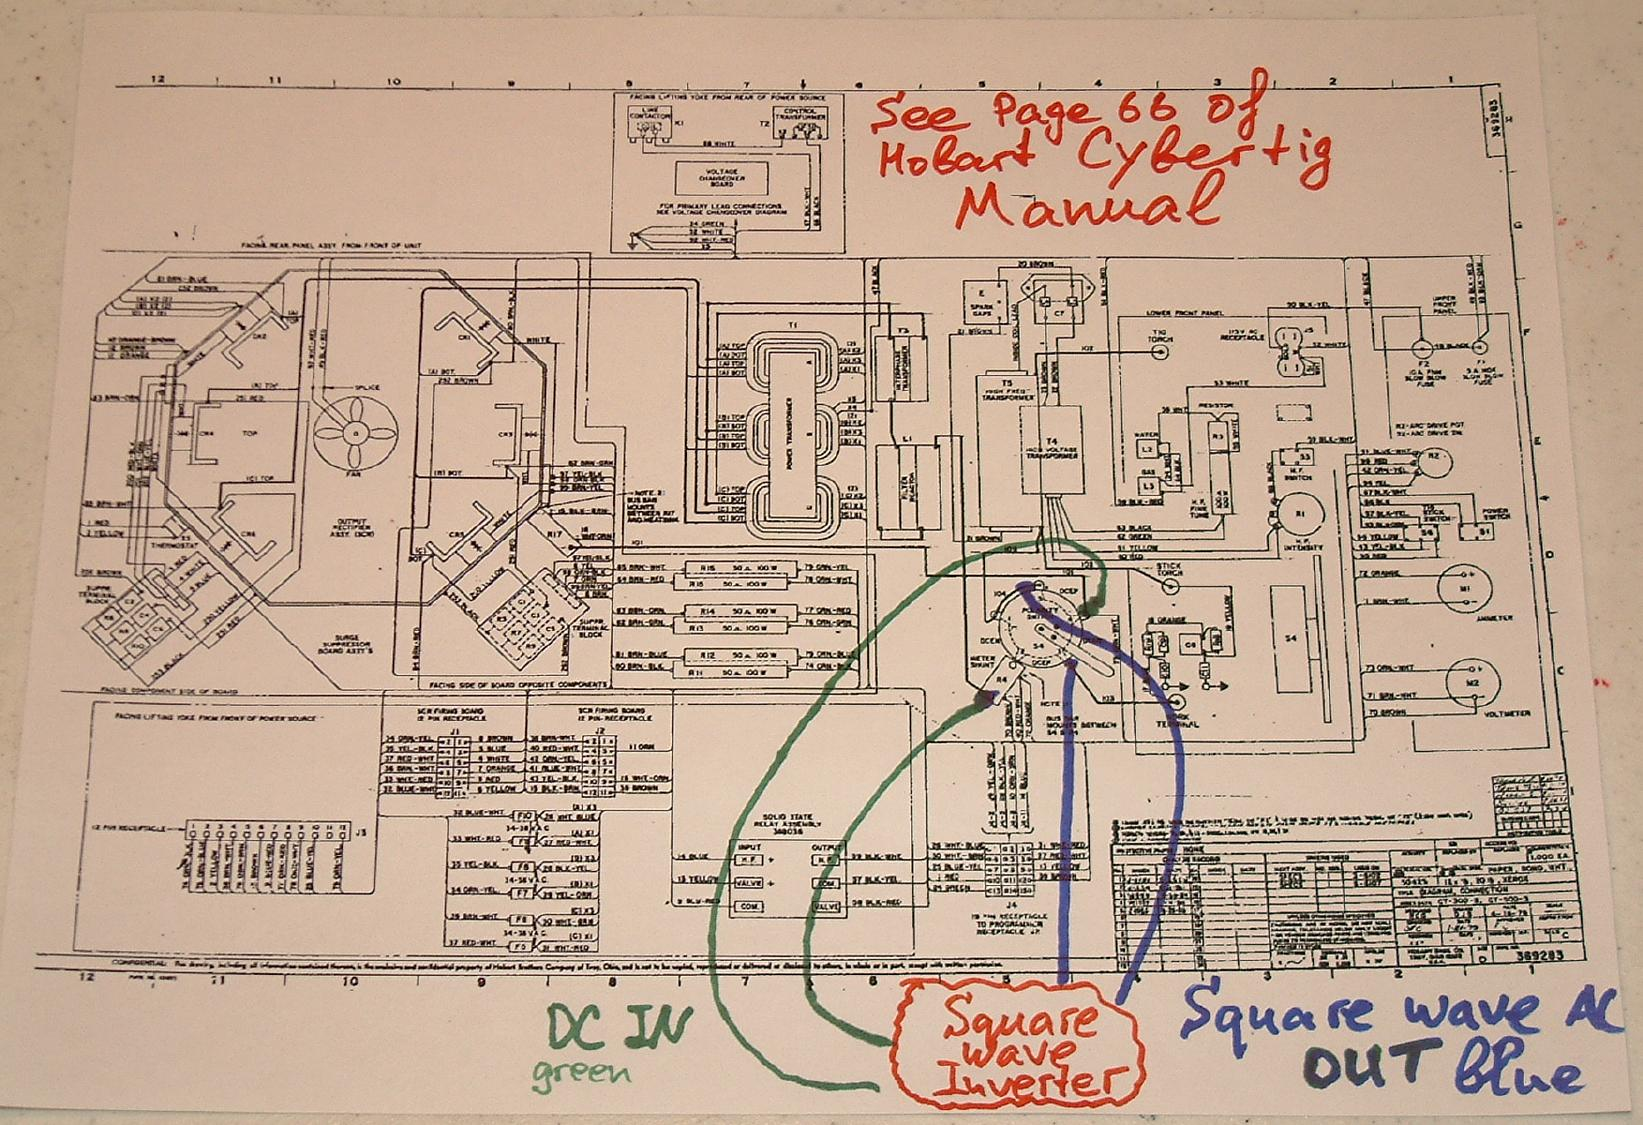 dc to ac inverter schematic diagram ceiling fan electrical wiring welder get free image about